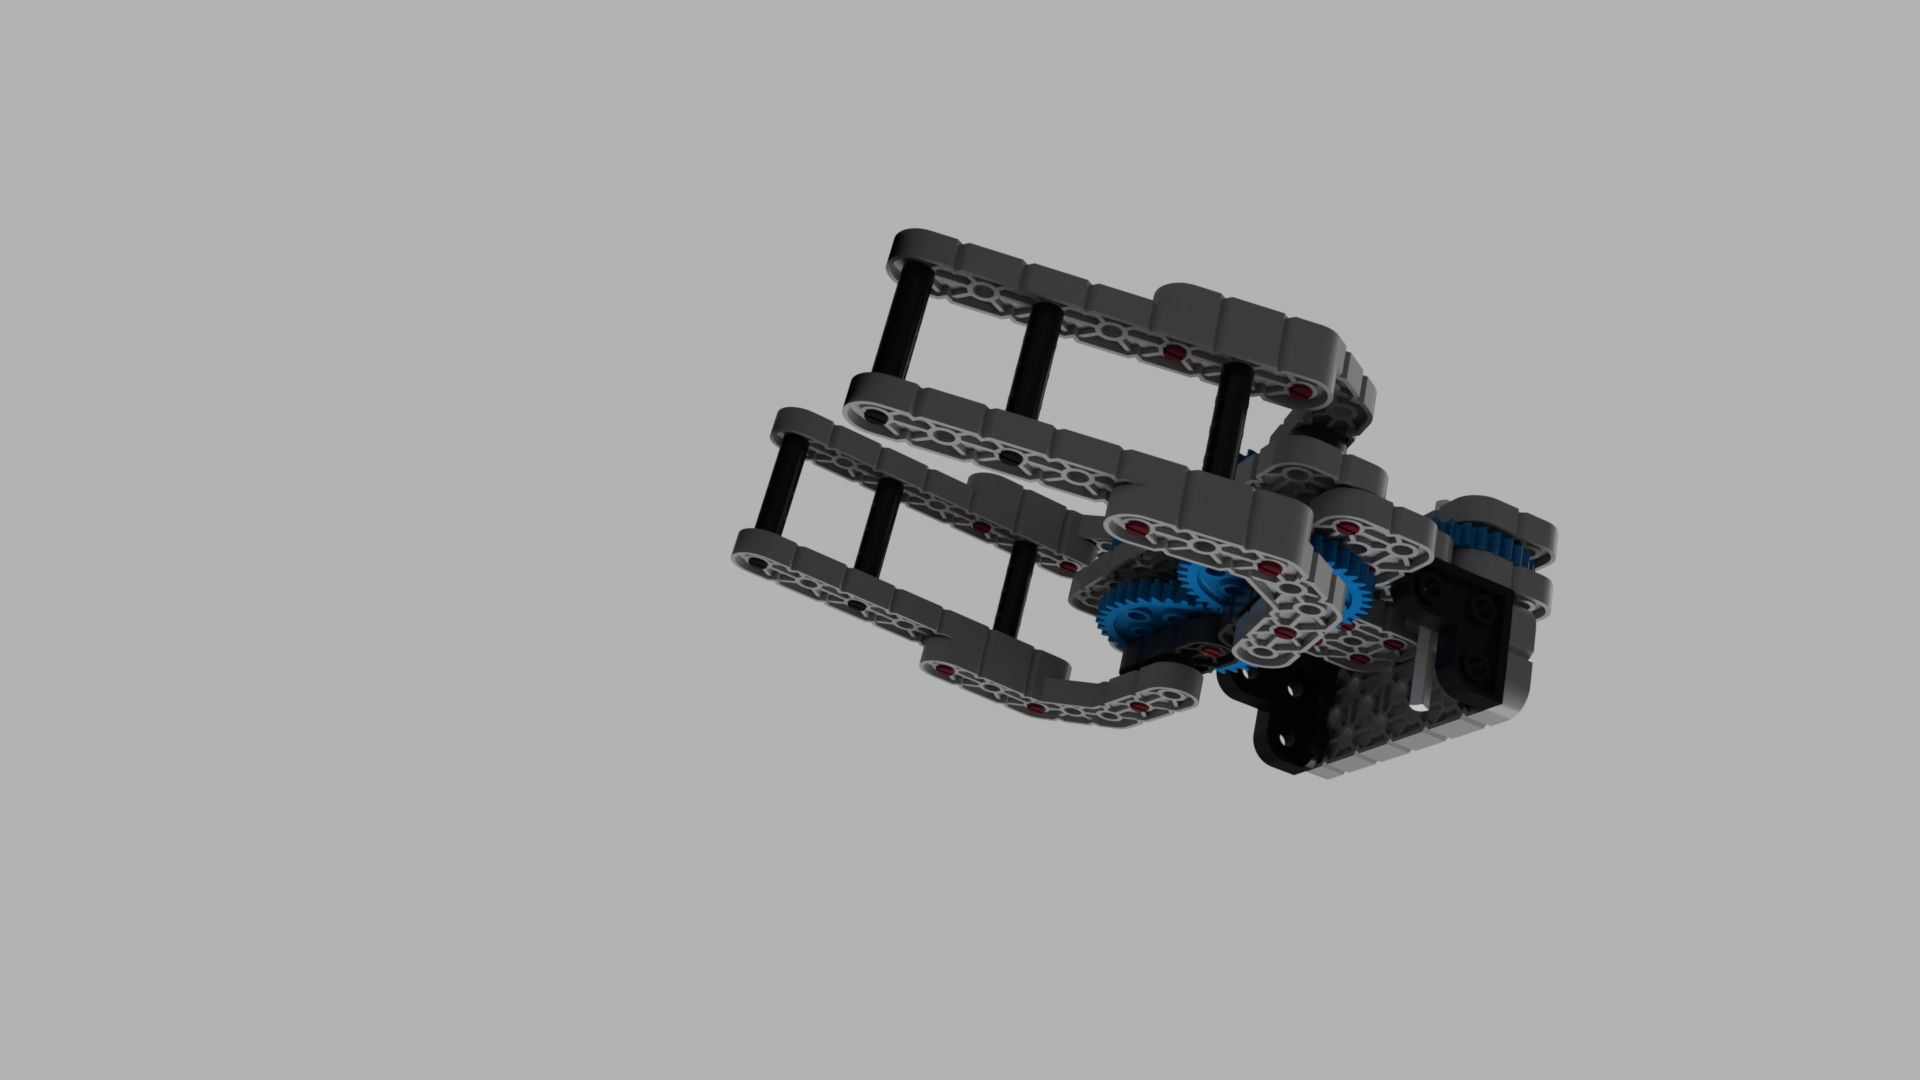 Garra-robotica-vex-iq-2016-oct-06-02-10-03pm-000-customizedview387608231-3500-3500